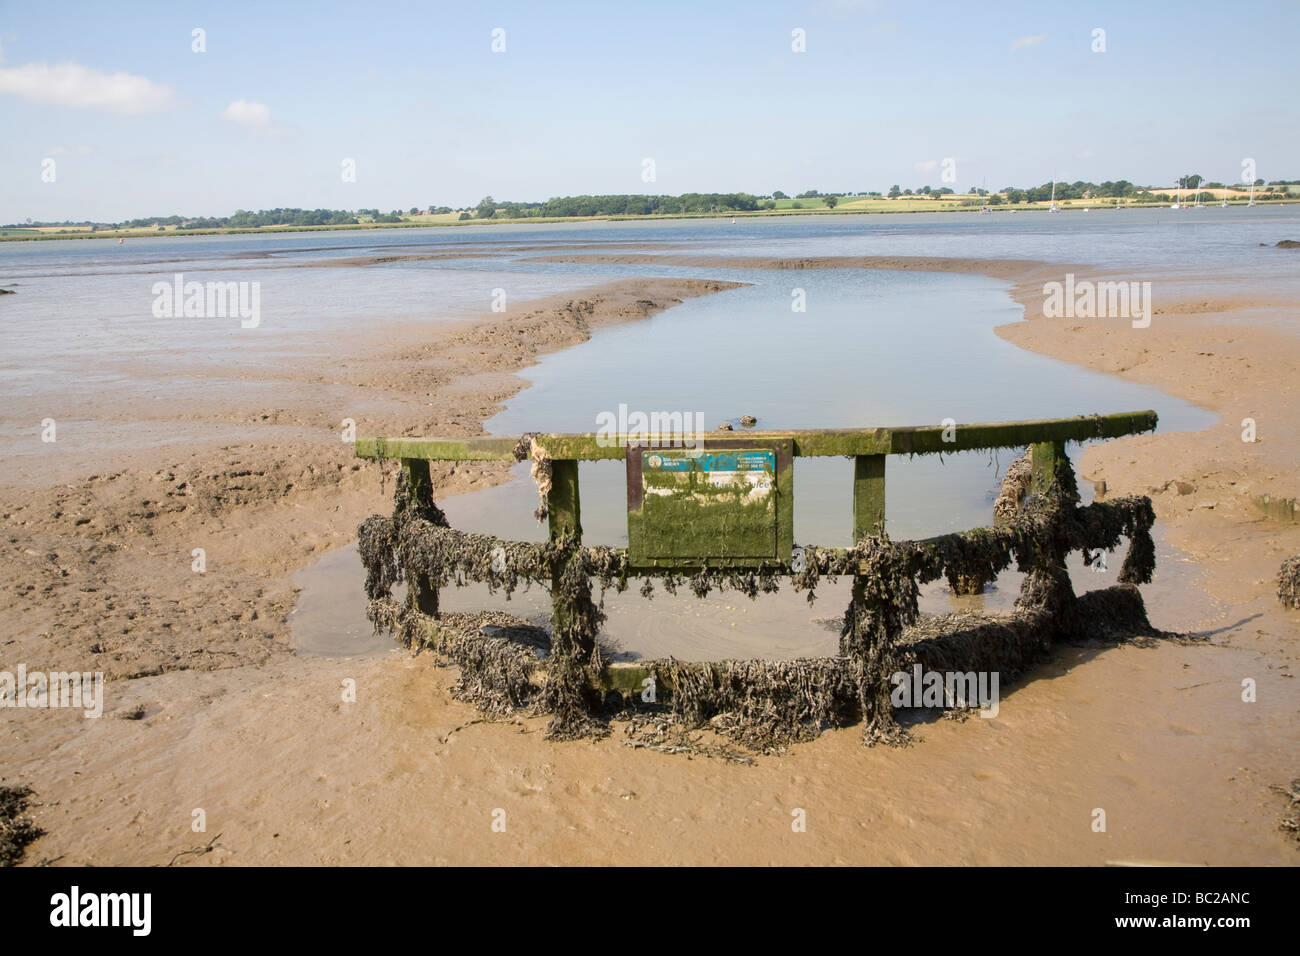 Drainage sluice on River Deben near Pettistree Hall, Sutton, Suffolk, England - Stock Image